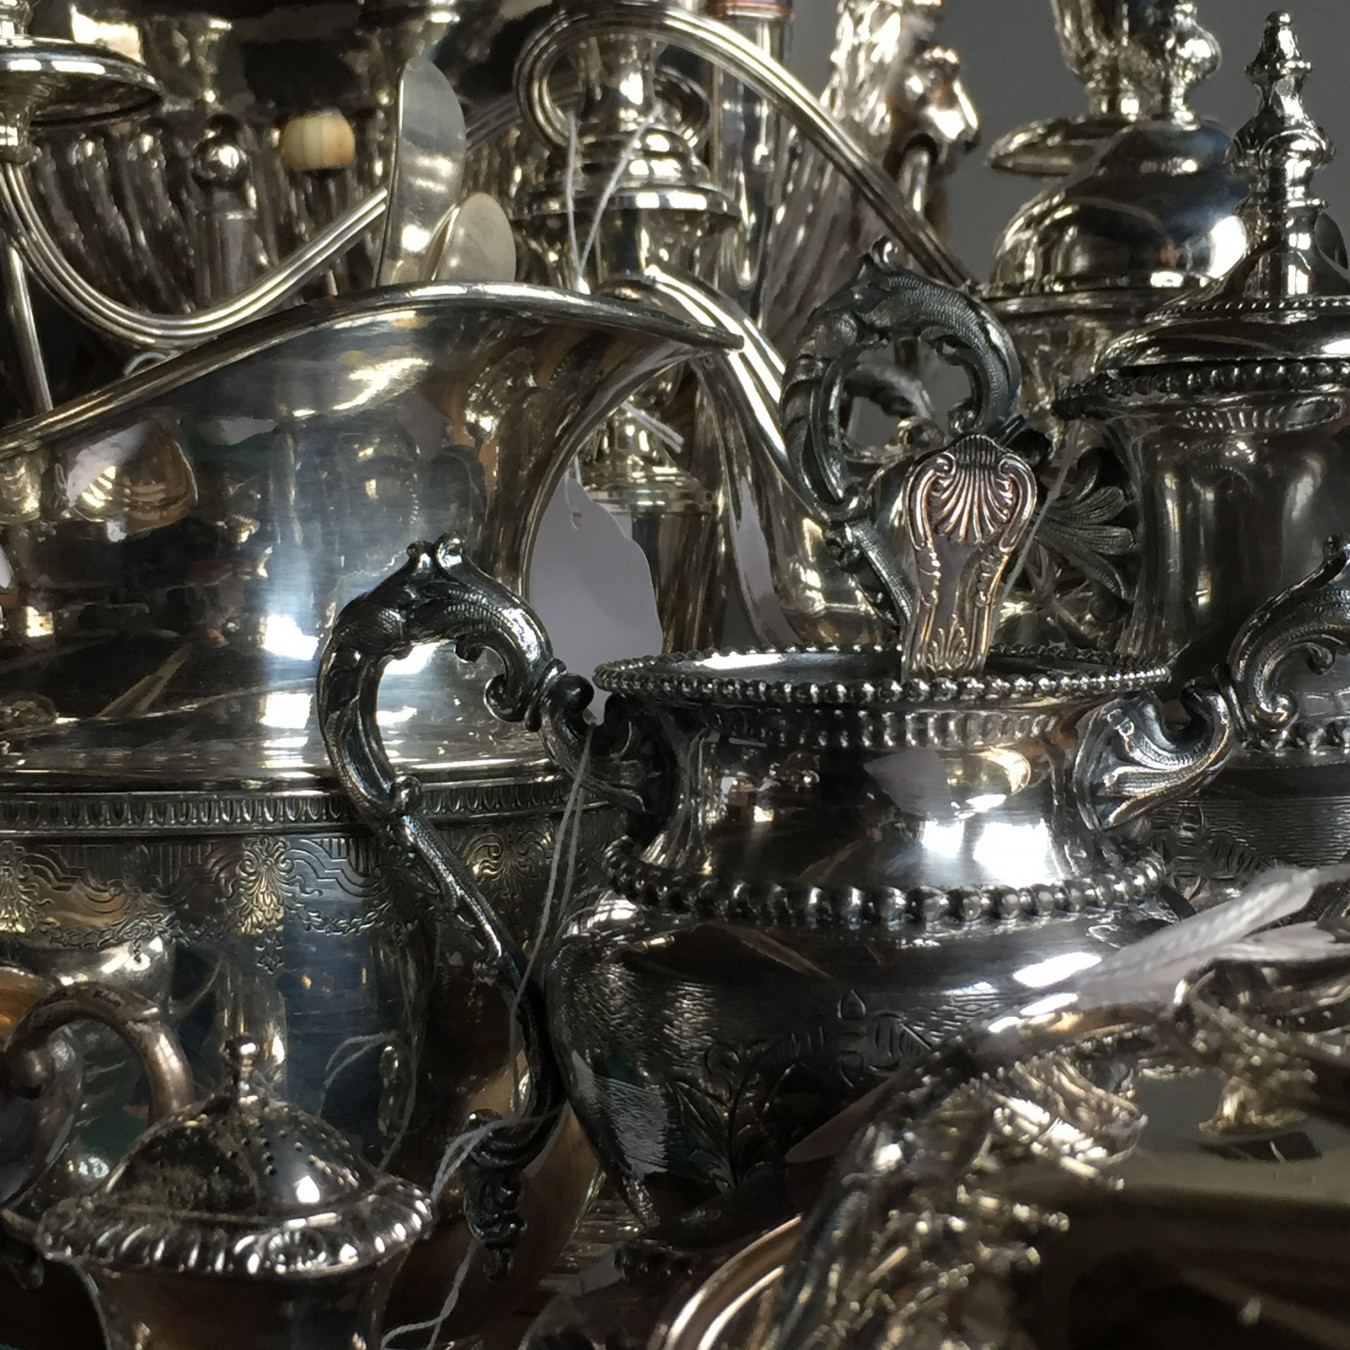 Image detail showing a range of second hand donated polished silverware.